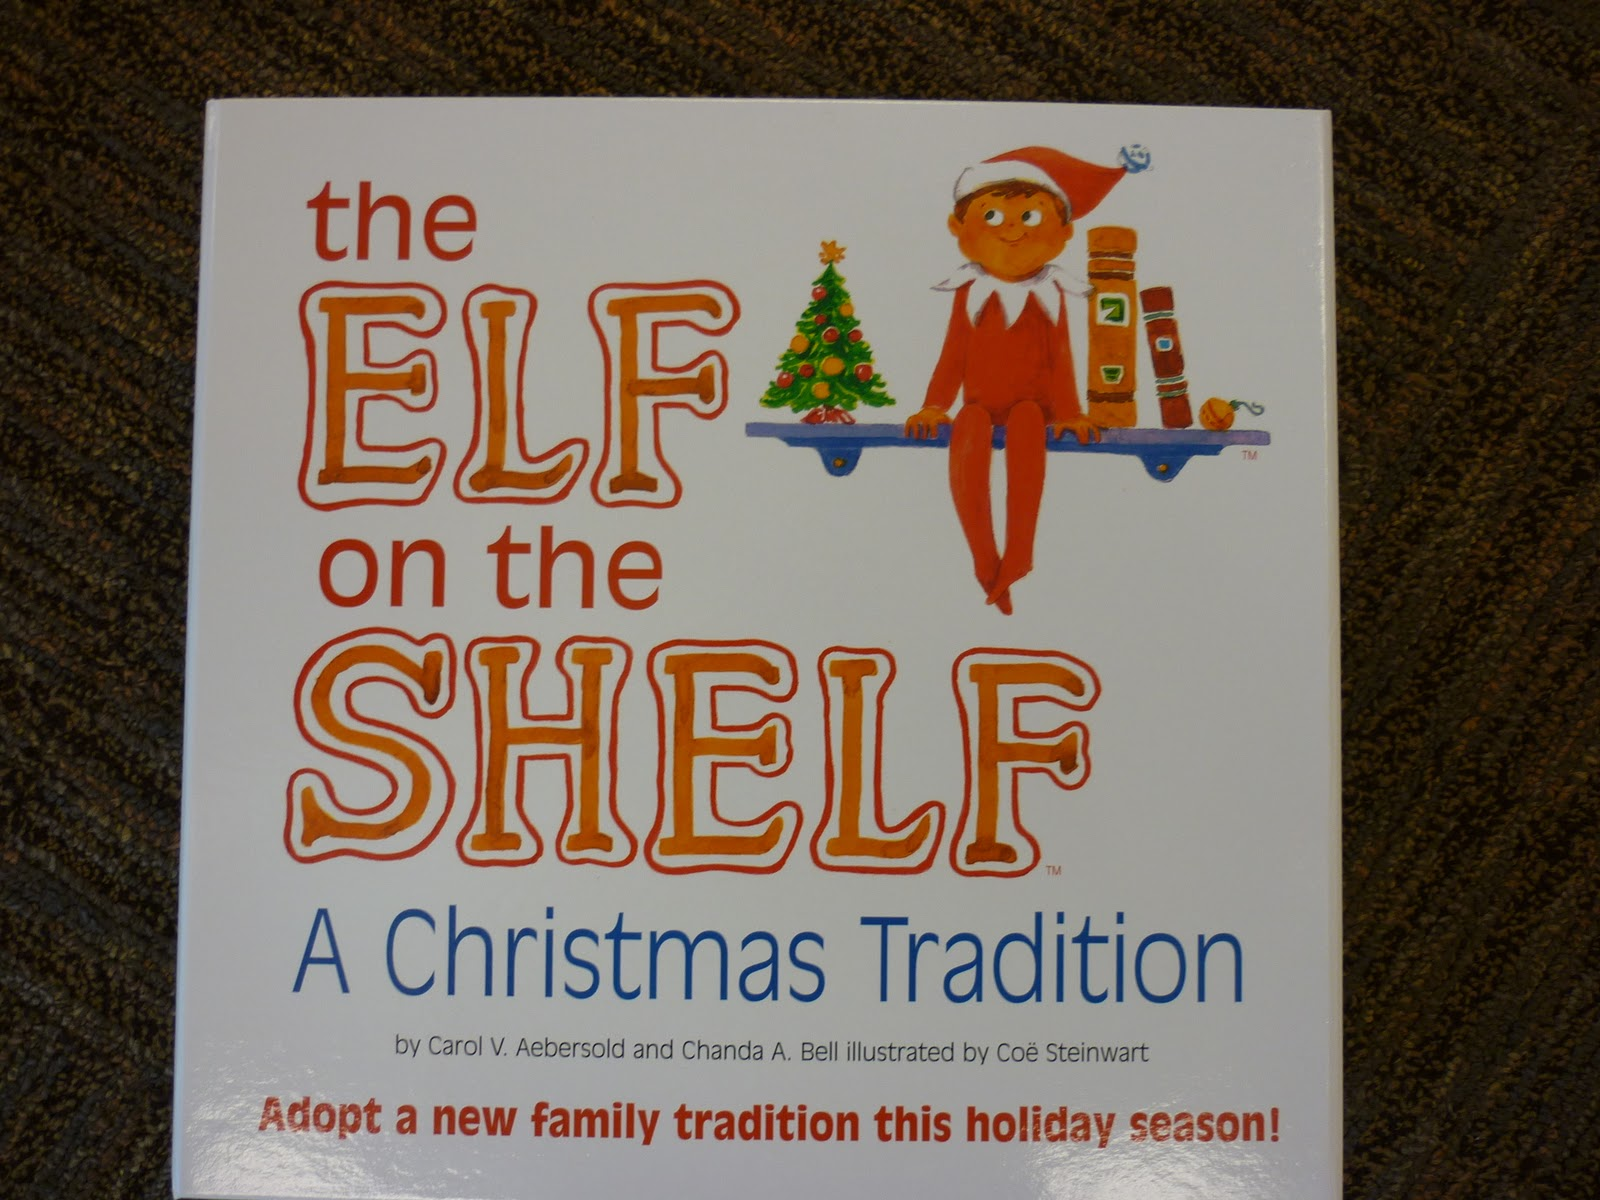 wright s hallmark is pleased to announce that we have the elf on the . 1600 x 1200.Hallmark Christmas Movies